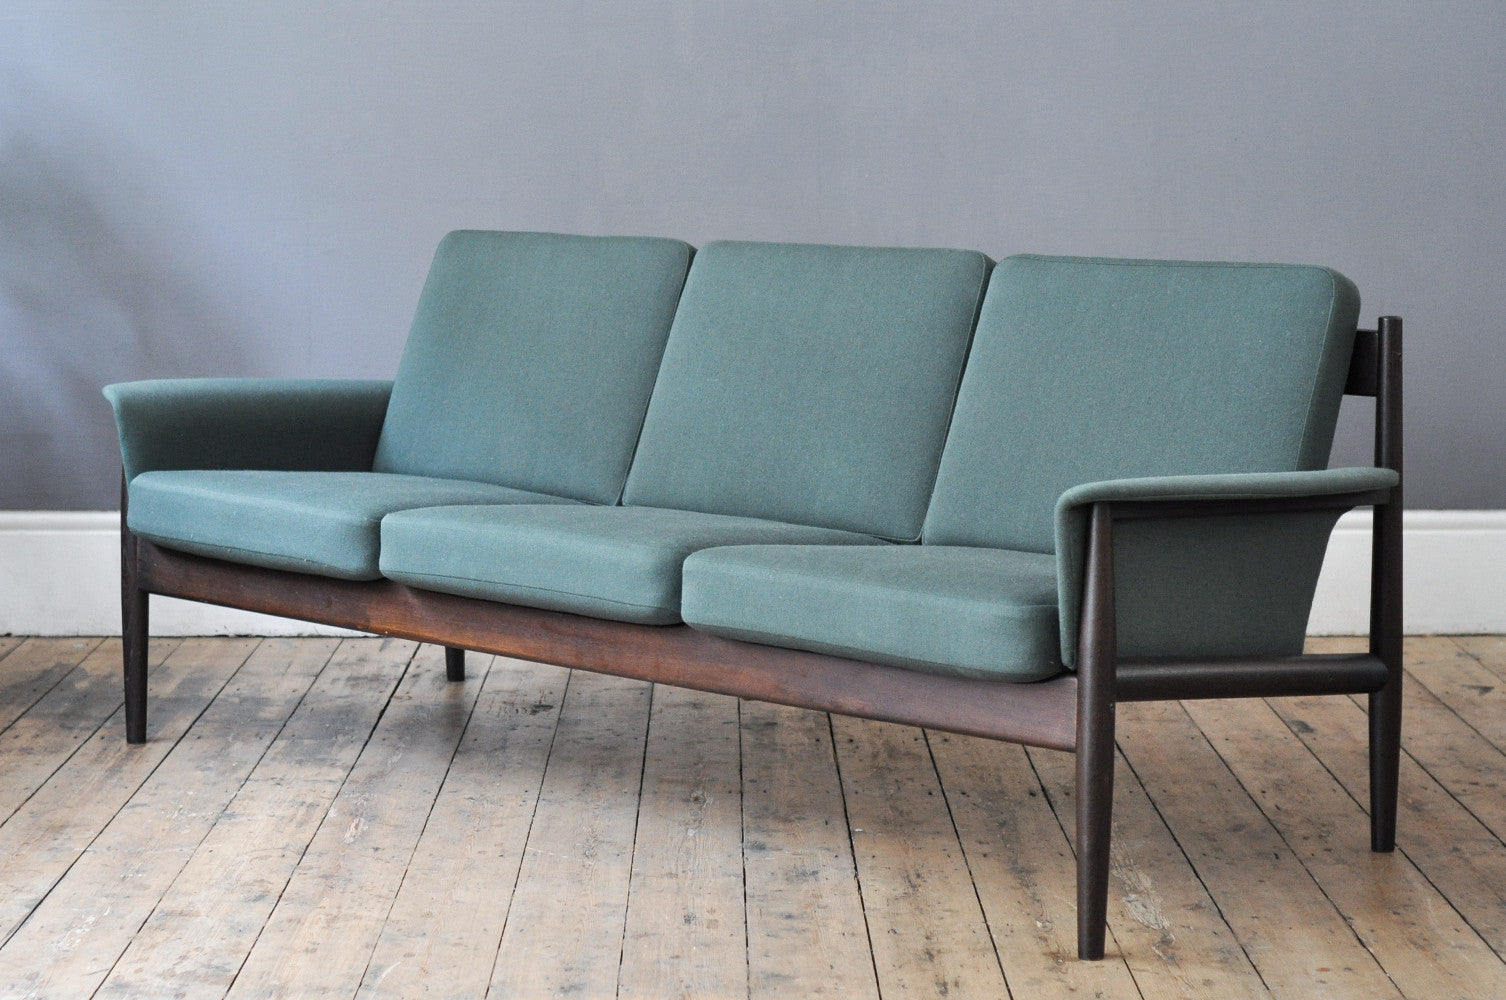 Grete Jalk Sofa - Forest London